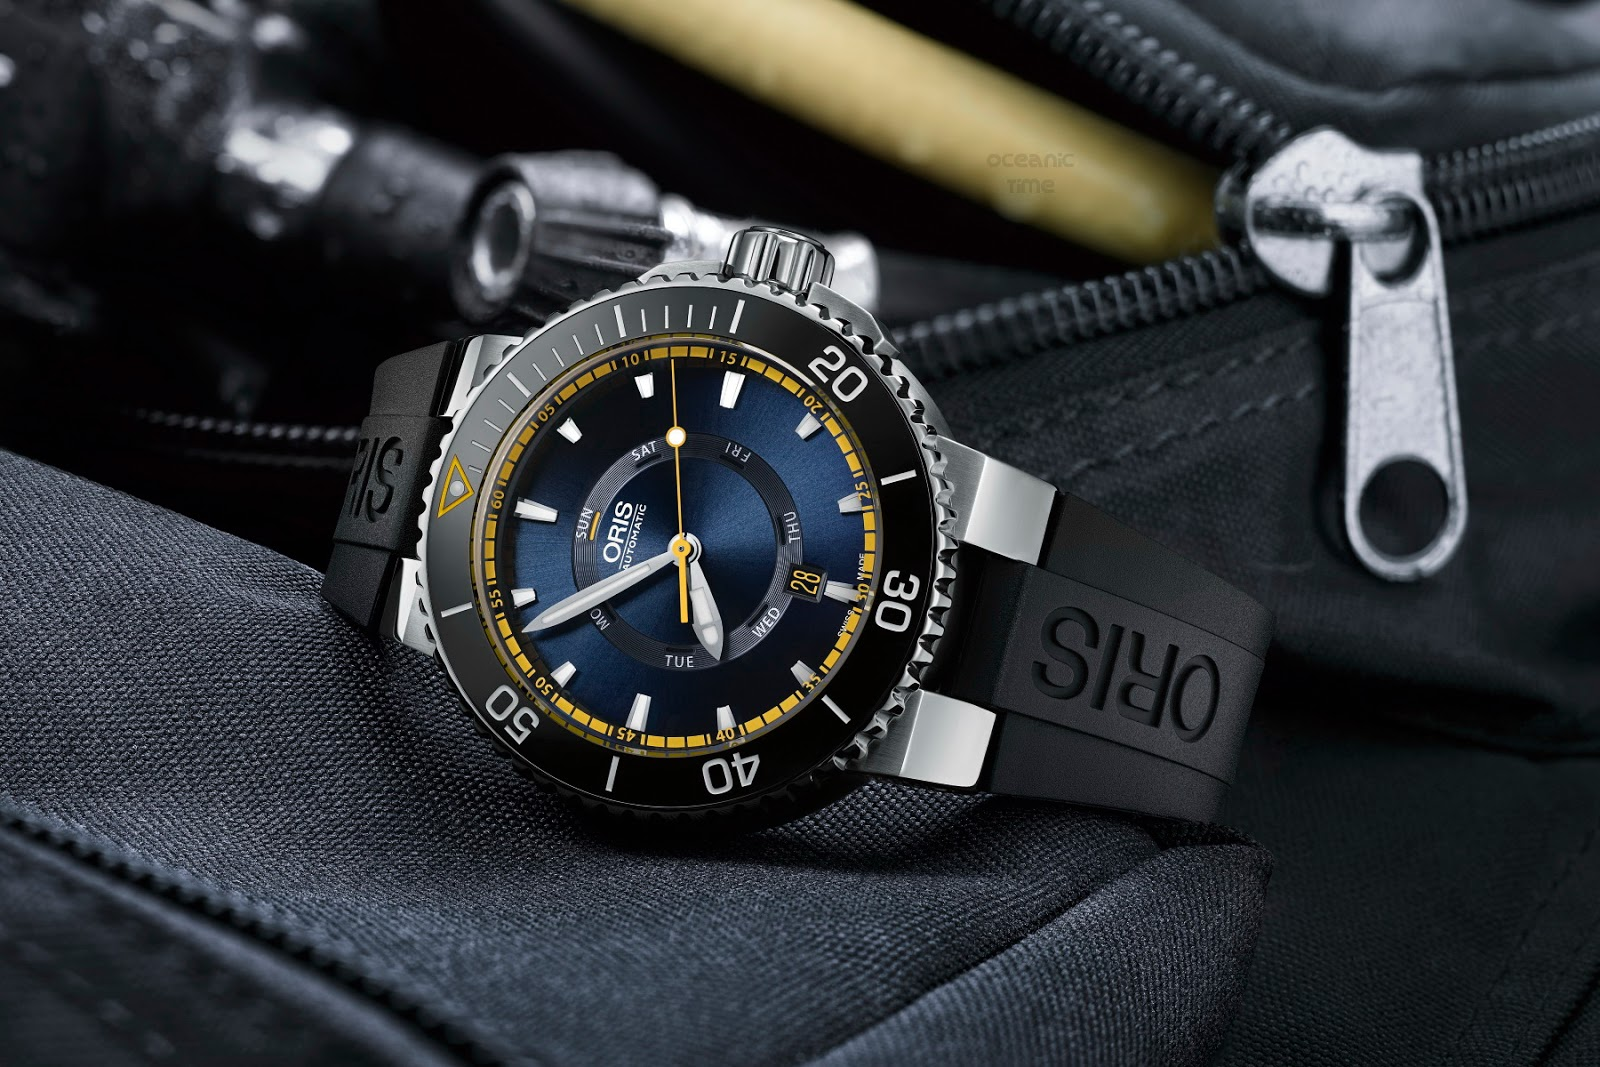 ORIS Aquis GREAT BARRIER REEF Limited Ed